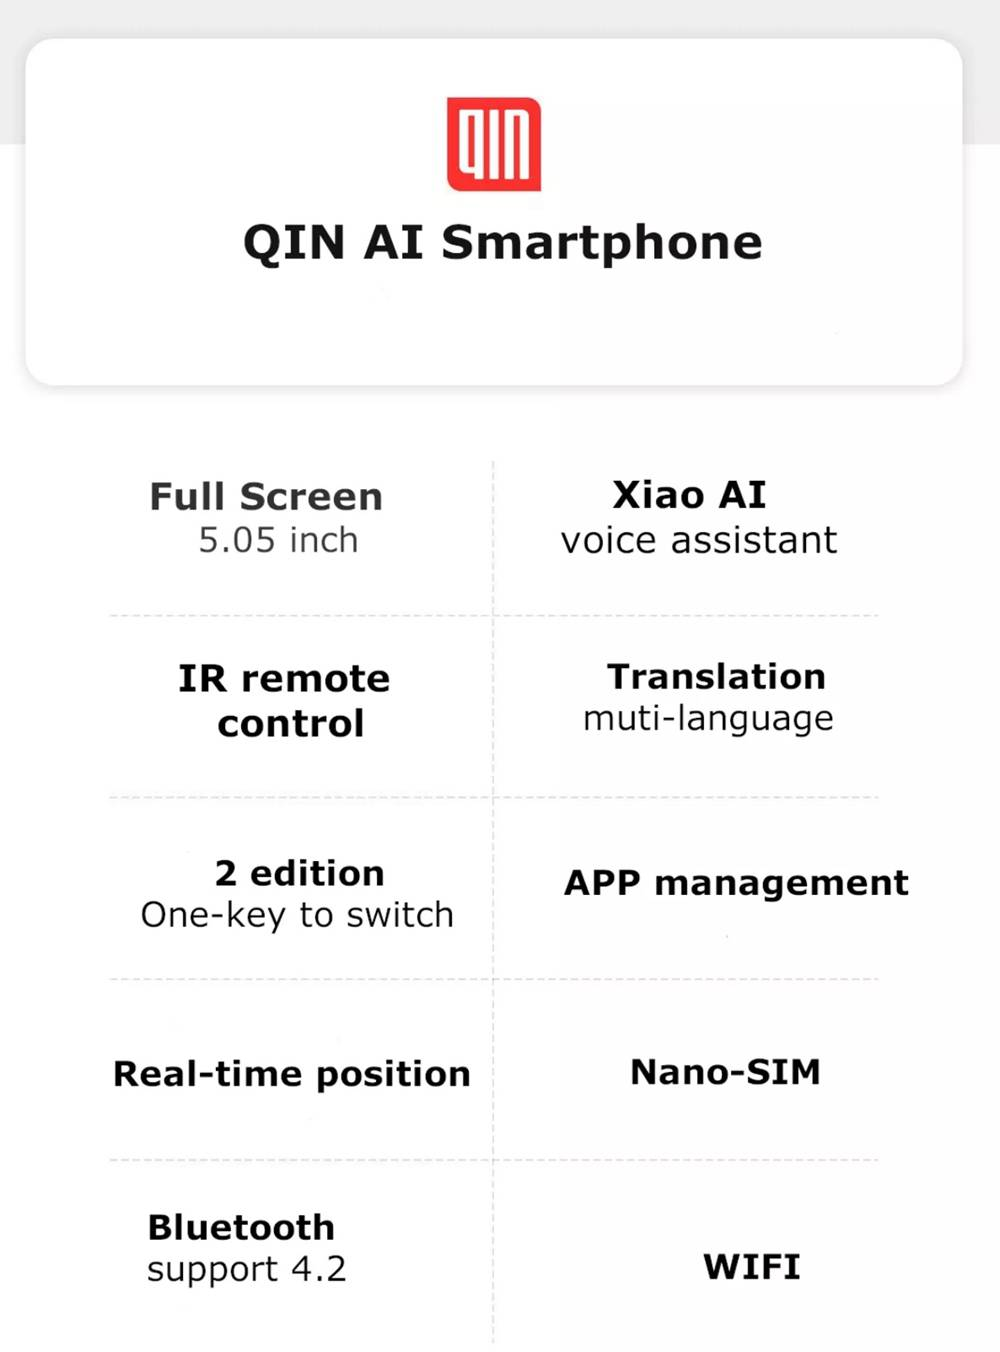 QIN Full Screen Bar Phone 4G LTE 5.05 Inch FHD+ Screen 1GB RAM 32GB ROM Android 9.0 - Gray